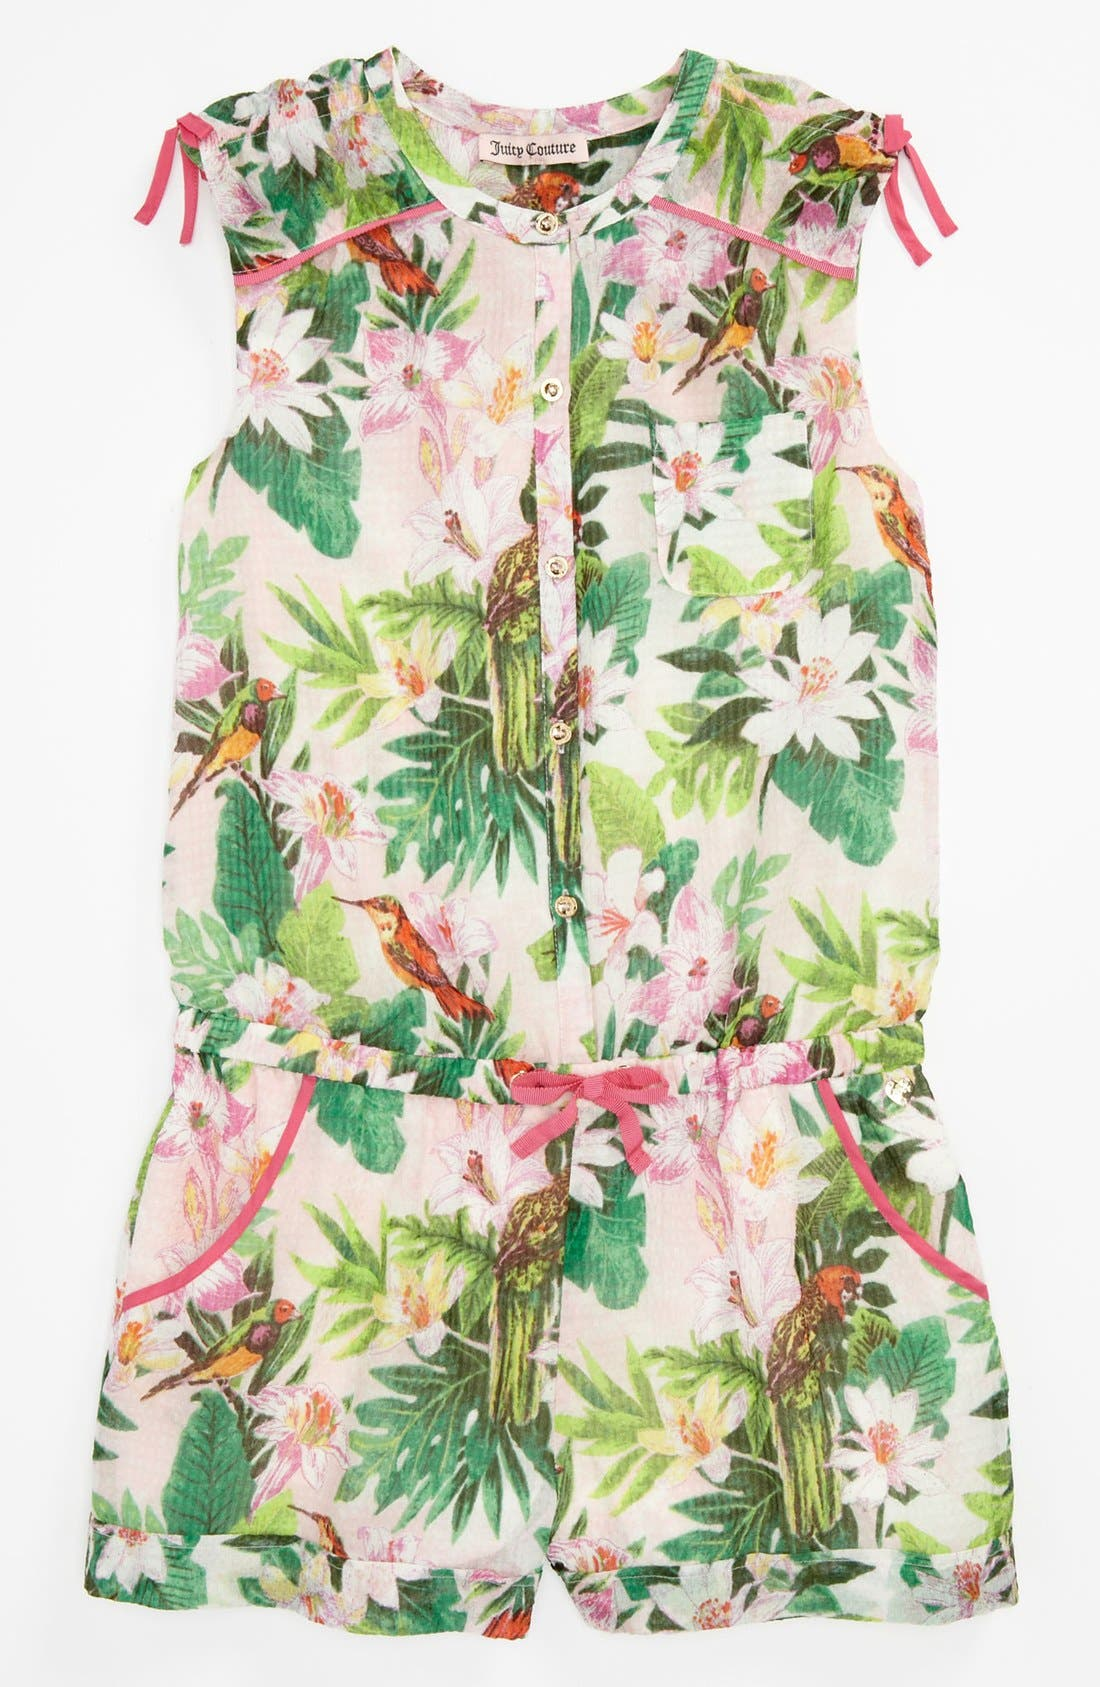 Alternate Image 1 Selected - Juicy Couture 'Birds of Paradise' Romper (Little Girls & Big Girls)